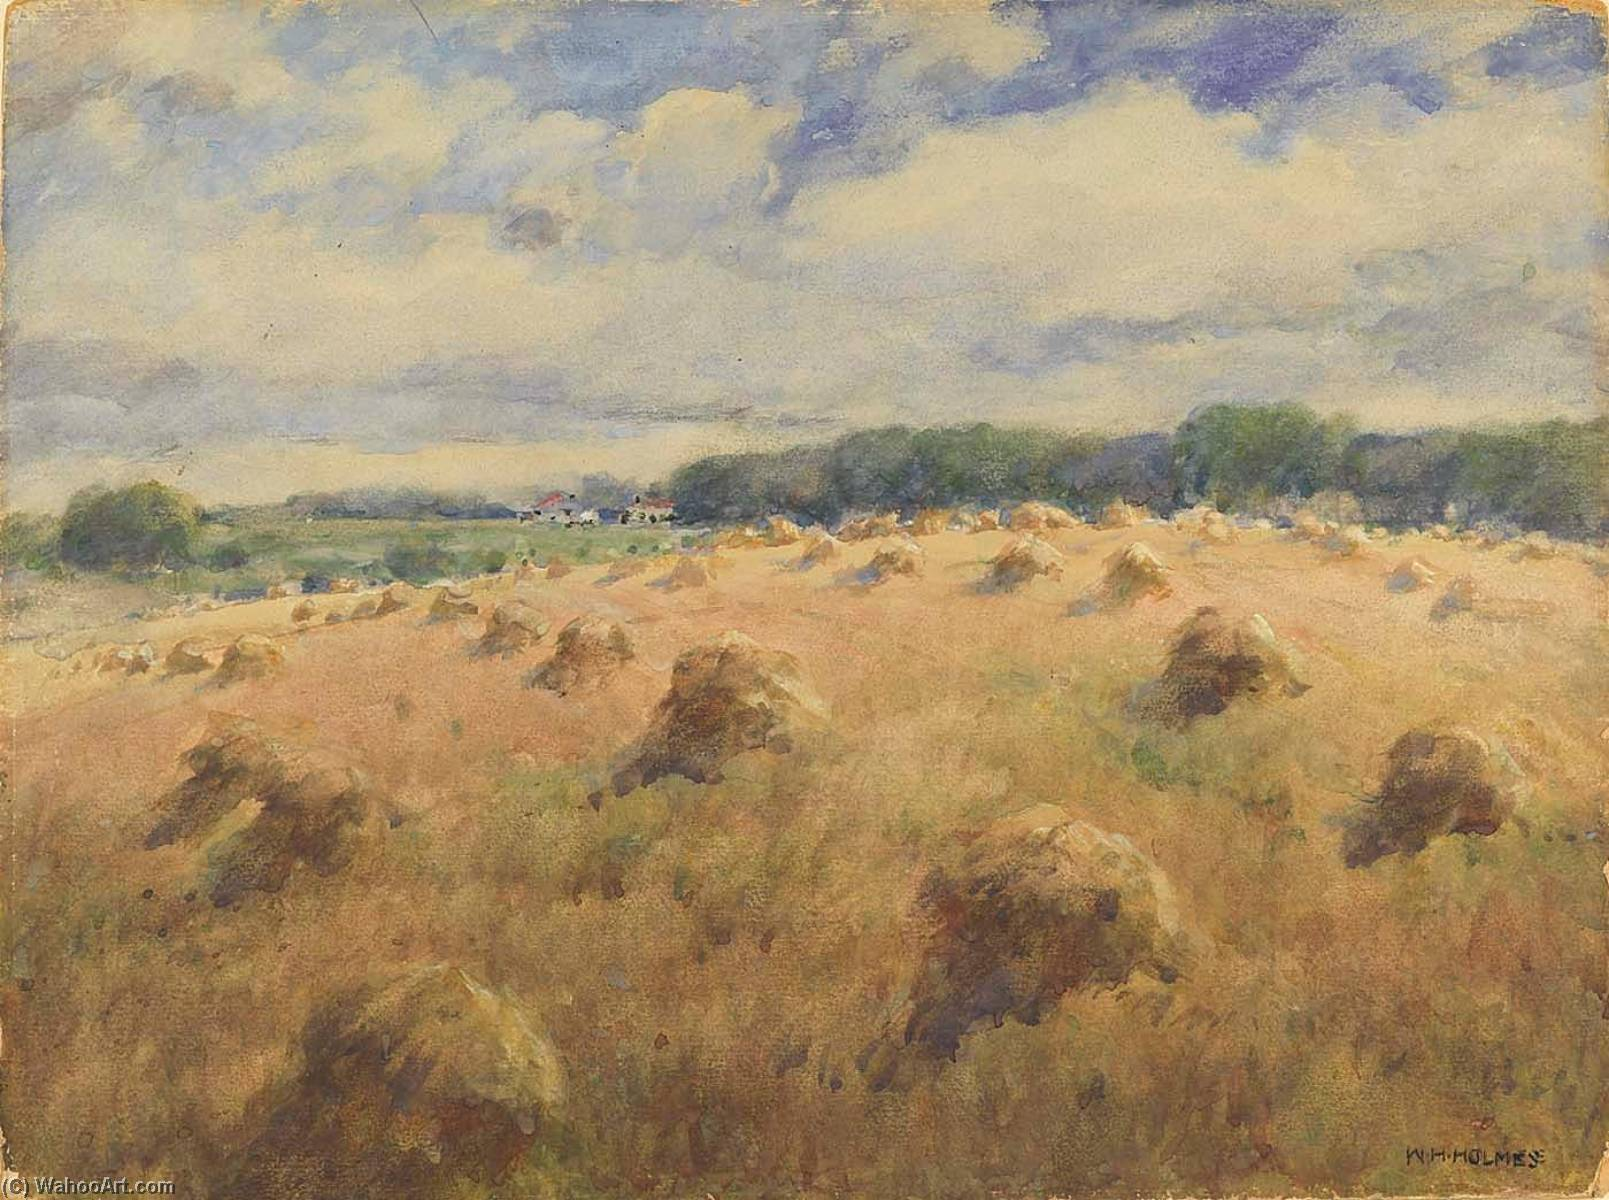 Maryland Wheat Fields by William Henry Holmes (1846-1933, United States) | WahooArt.com